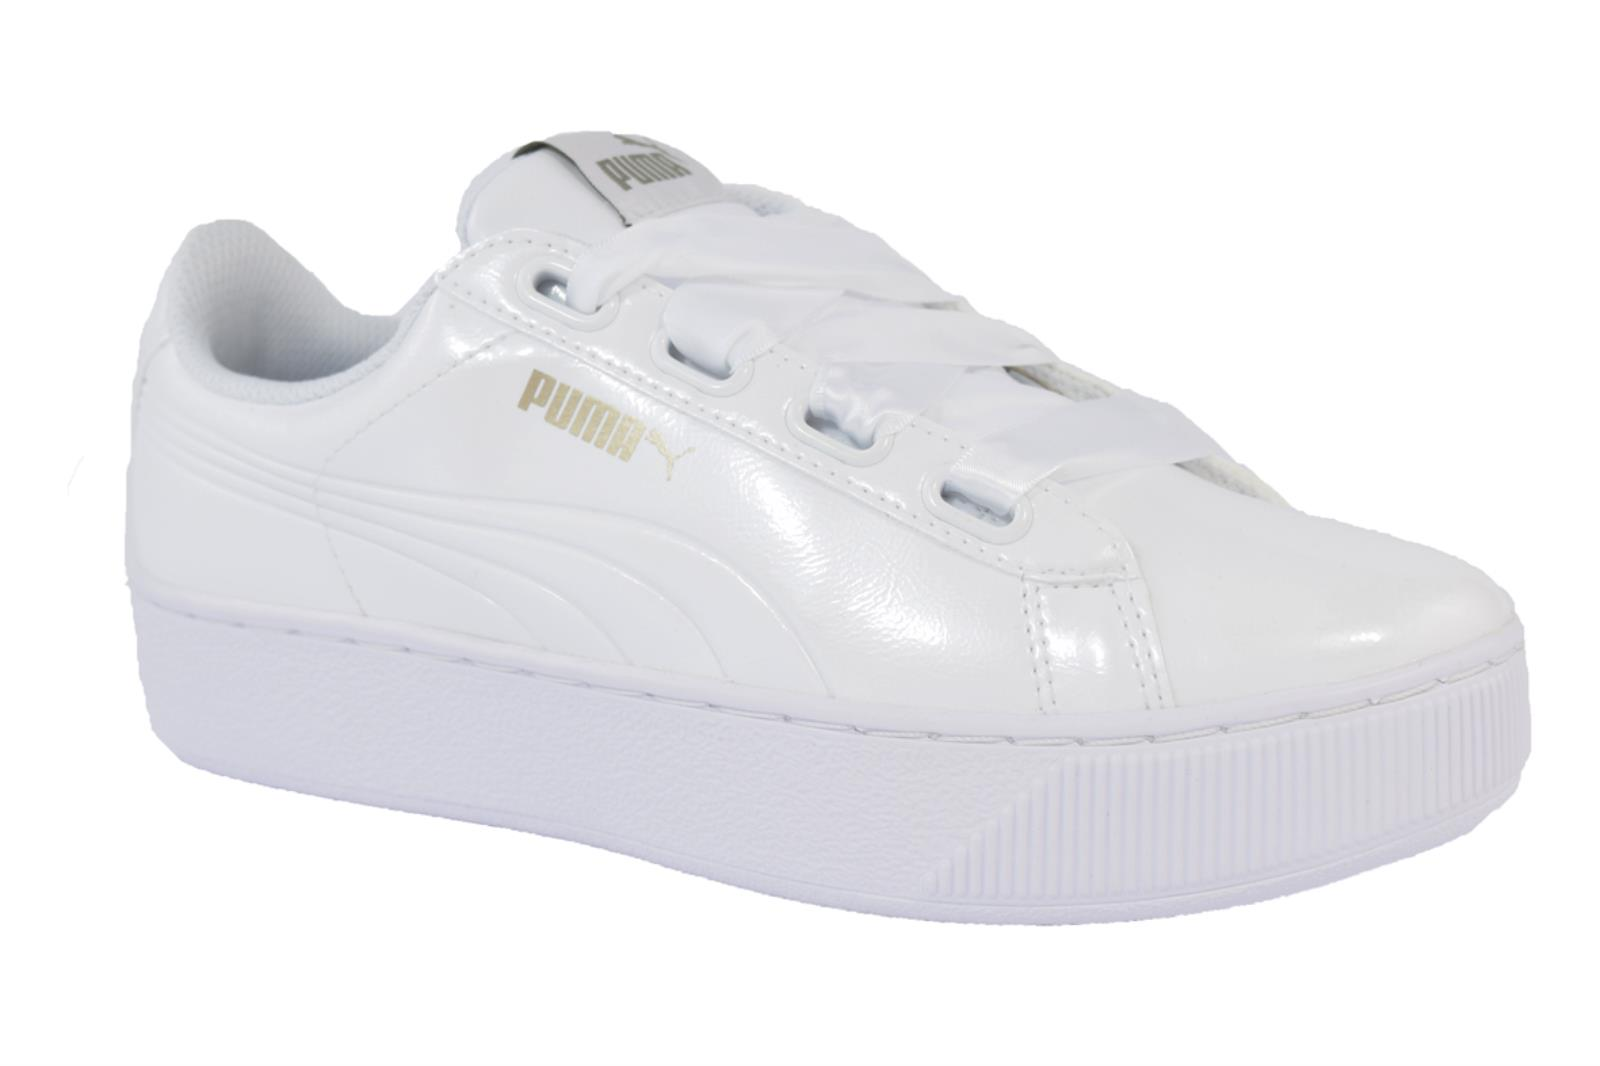 SNEAKERS PUMA VIKKY PLATFORM RIBBON 366419 02 DA DONNA IN VERNICE DI COLORE BIAN